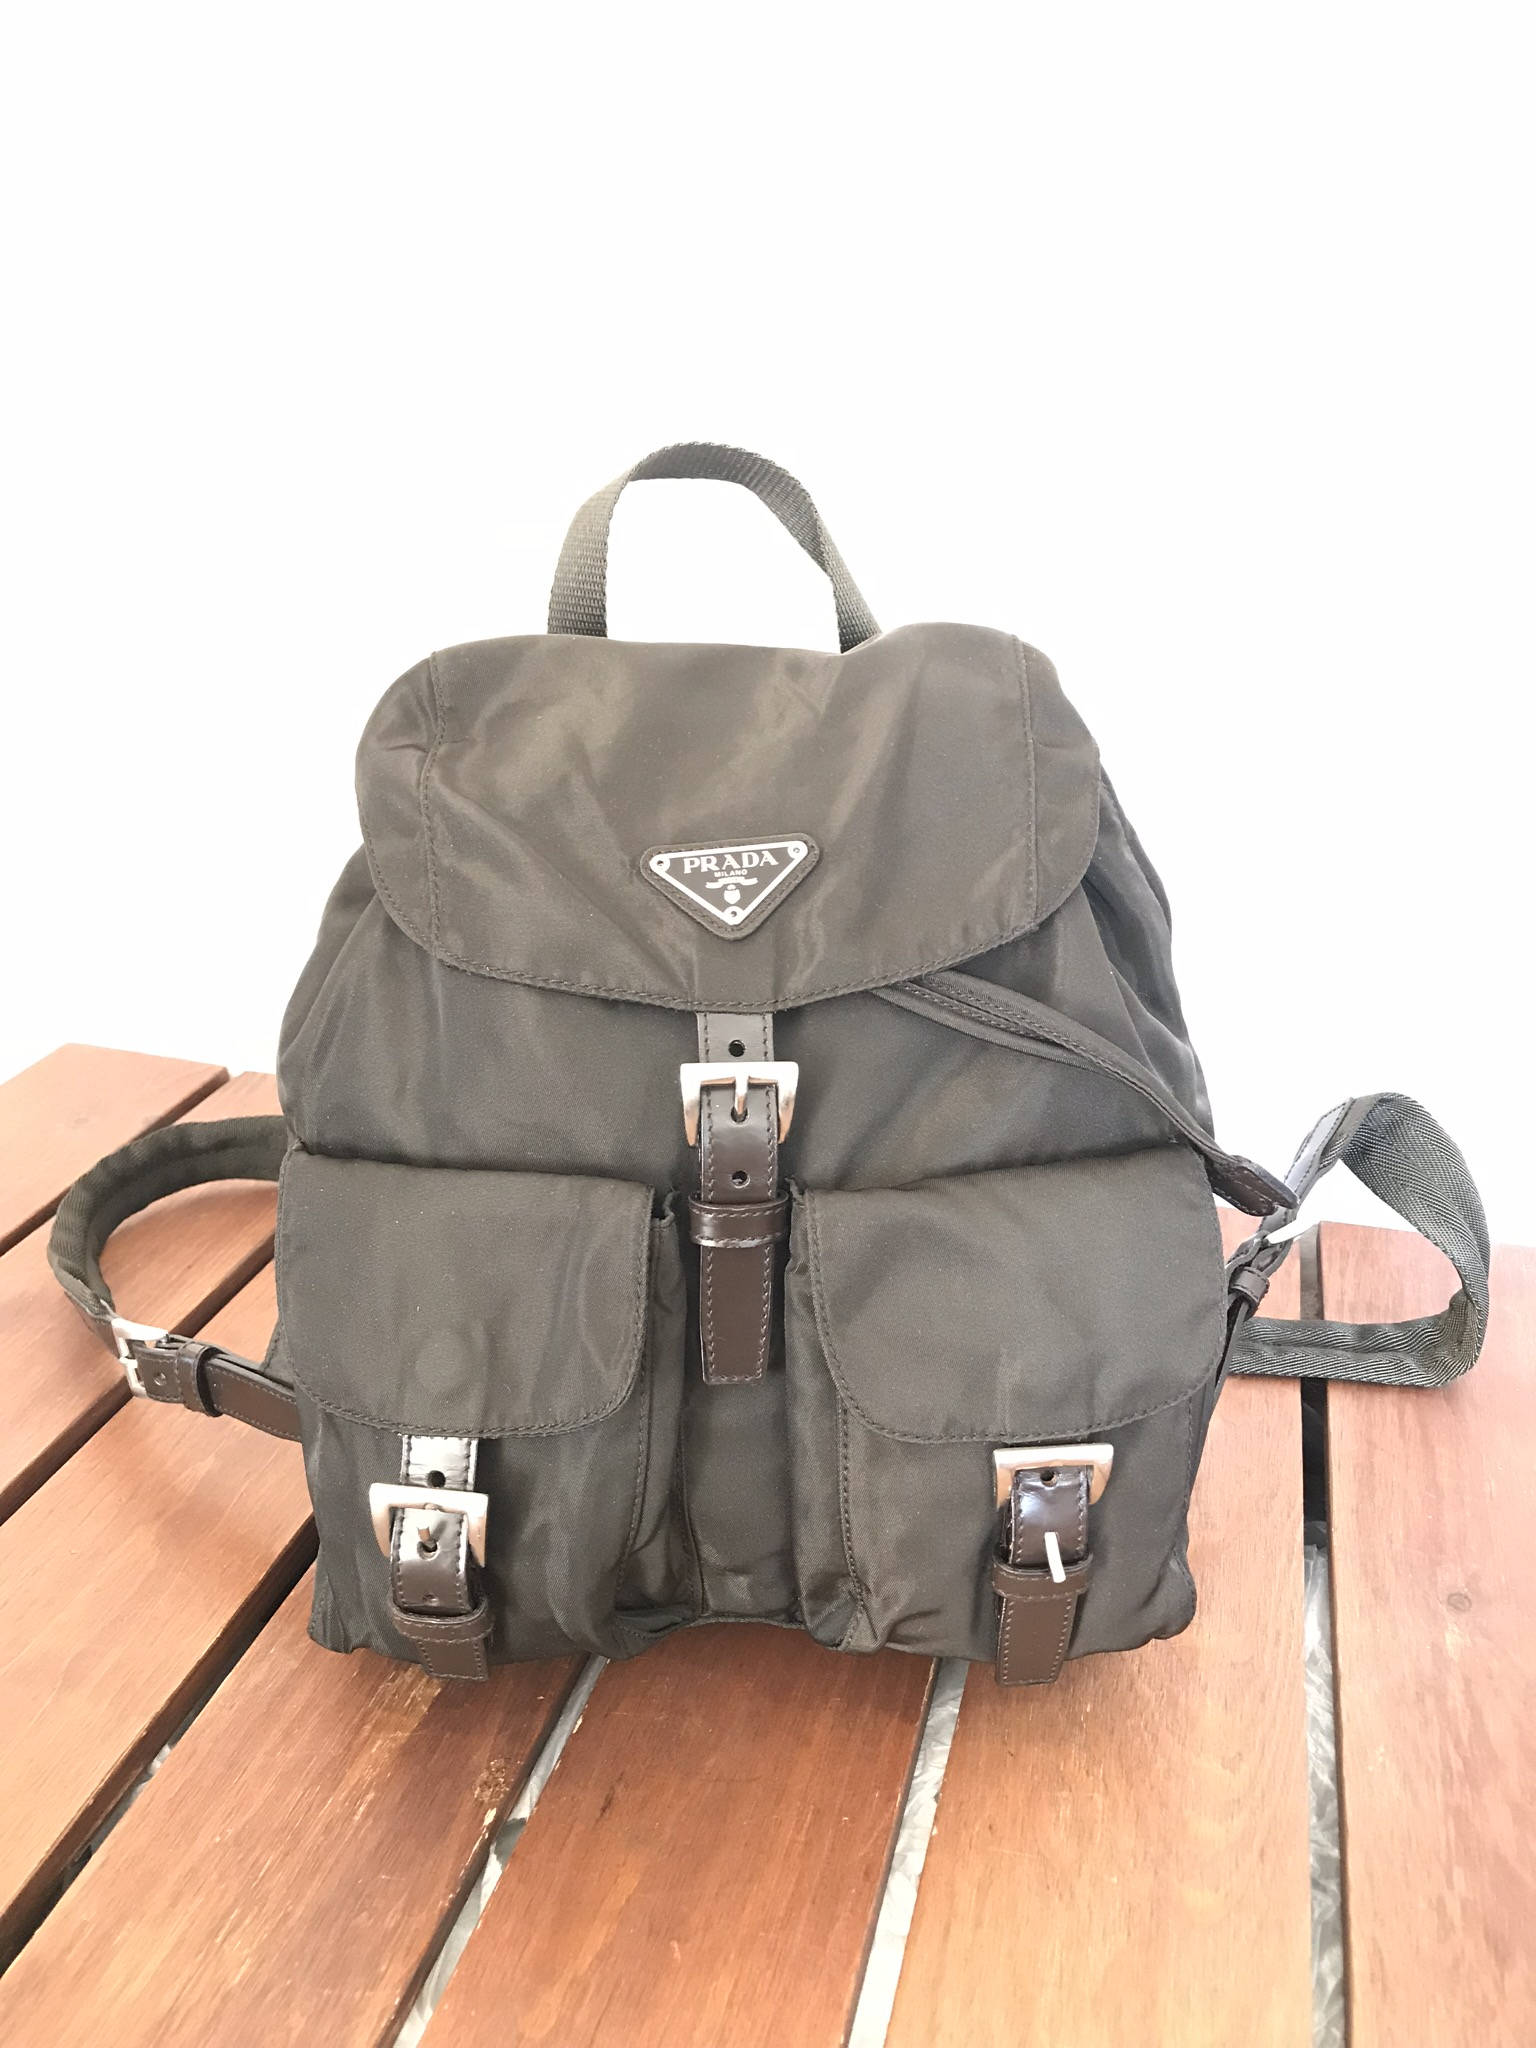 fb62afd9704 Vintage Fashionable Authentic Prada Brown Nylon and Leather Trim Backpack  Made in Italy